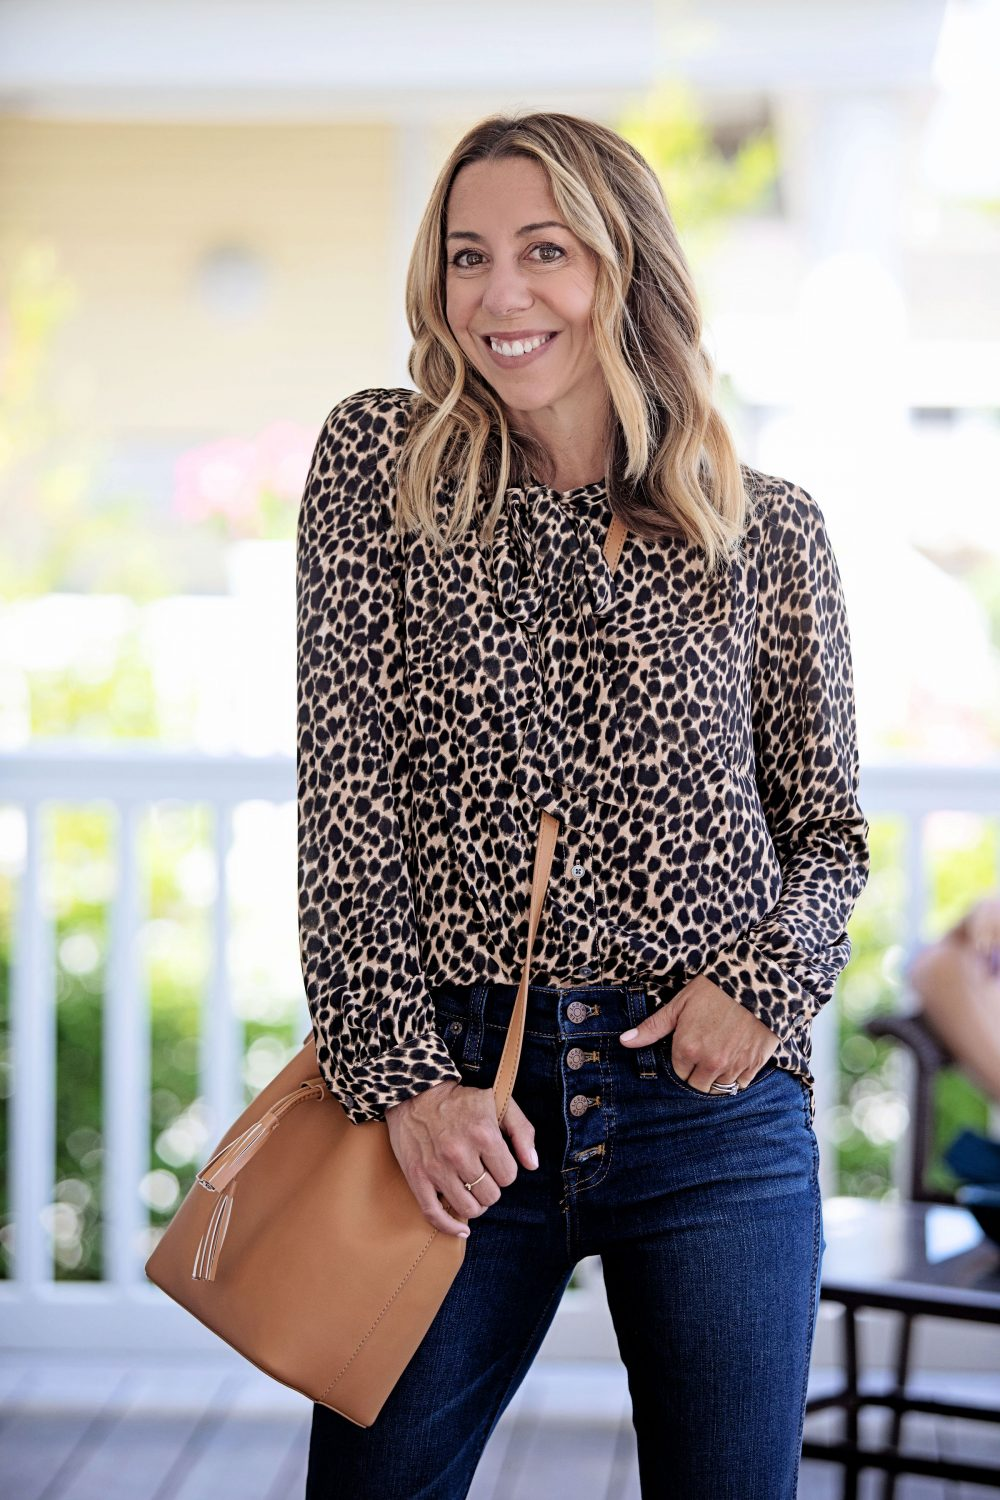 The Motherchic wearing J.Crew Factory leopard top